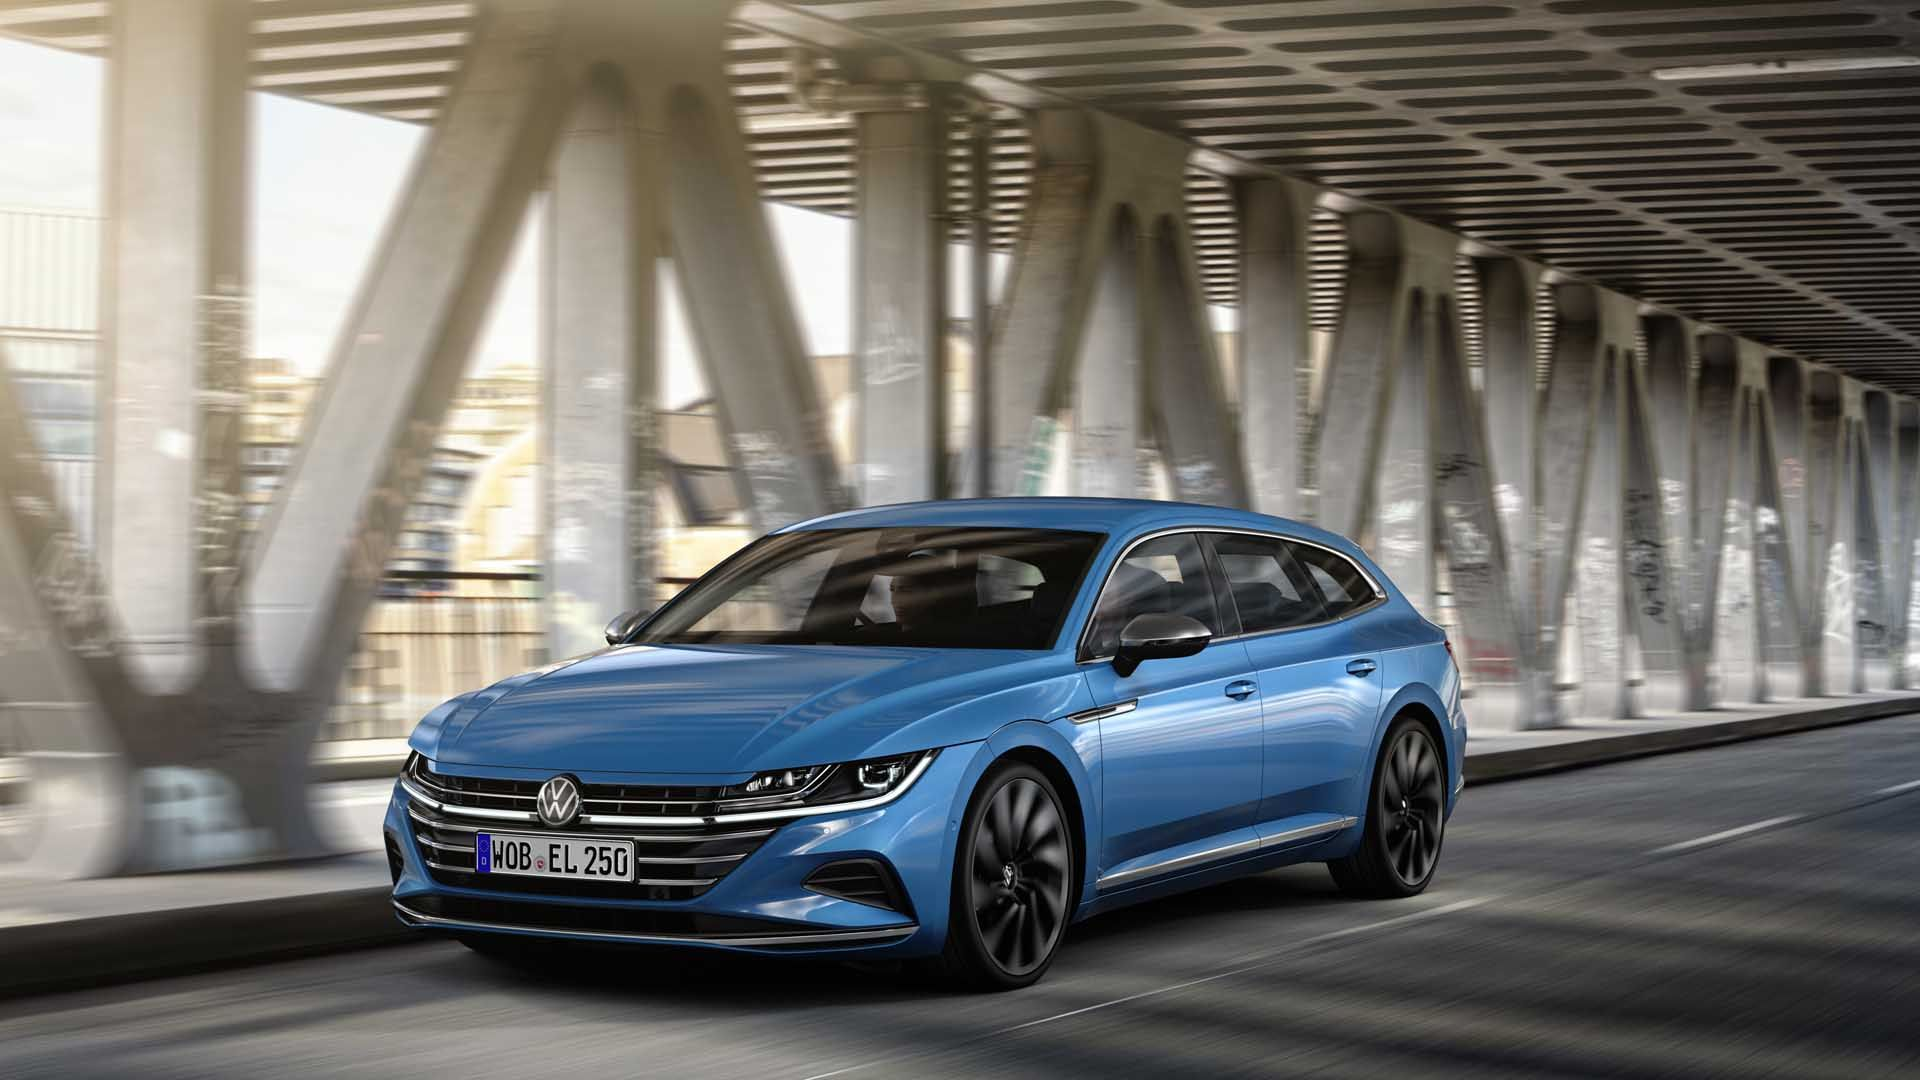 Https Www Motorauthority Com News 1128593 2021 Volkswagen Arteon Revealed New Tech New Face No Shooting Brake For Volkswagen Shooting Brake Volkswagen Models